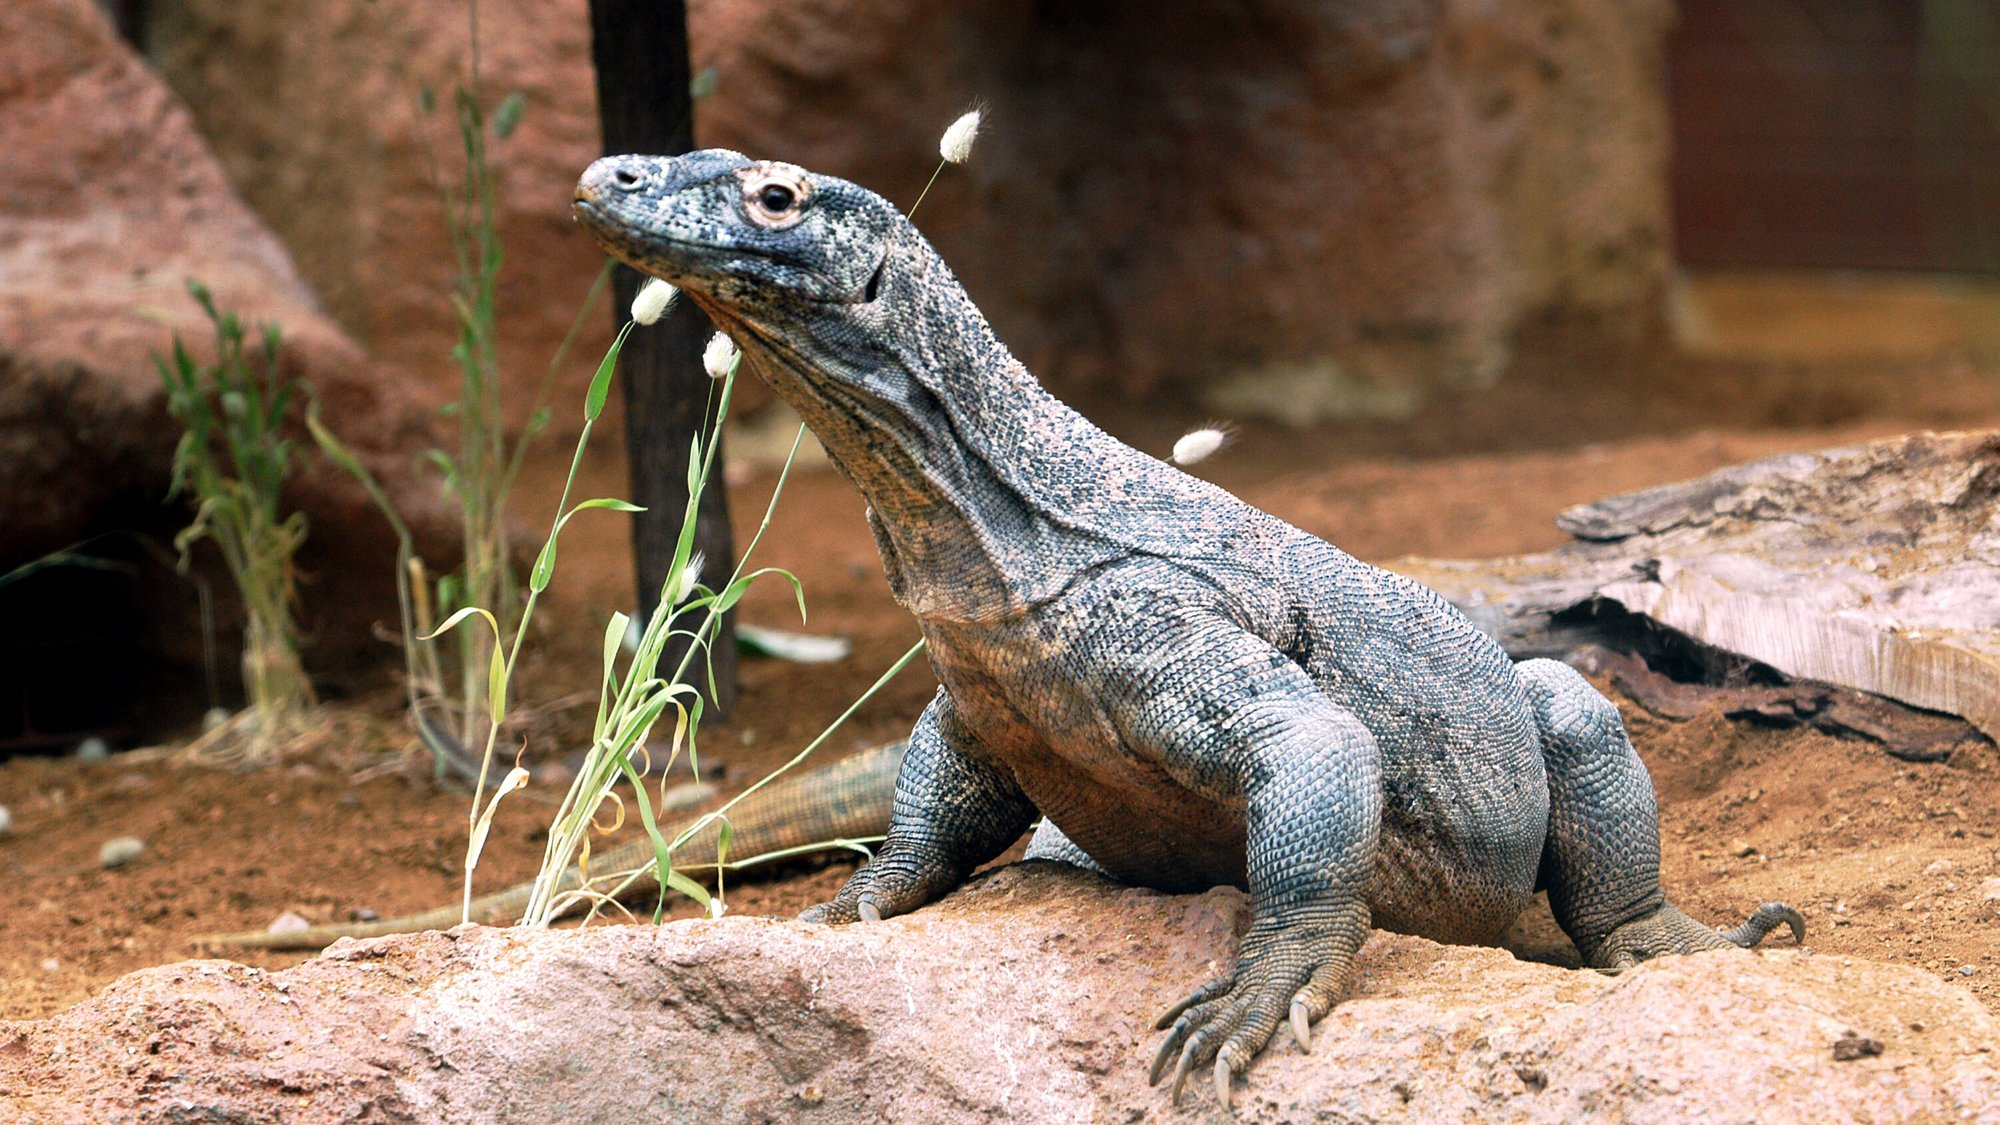 A komodo dragon at ZSL London Zoo.